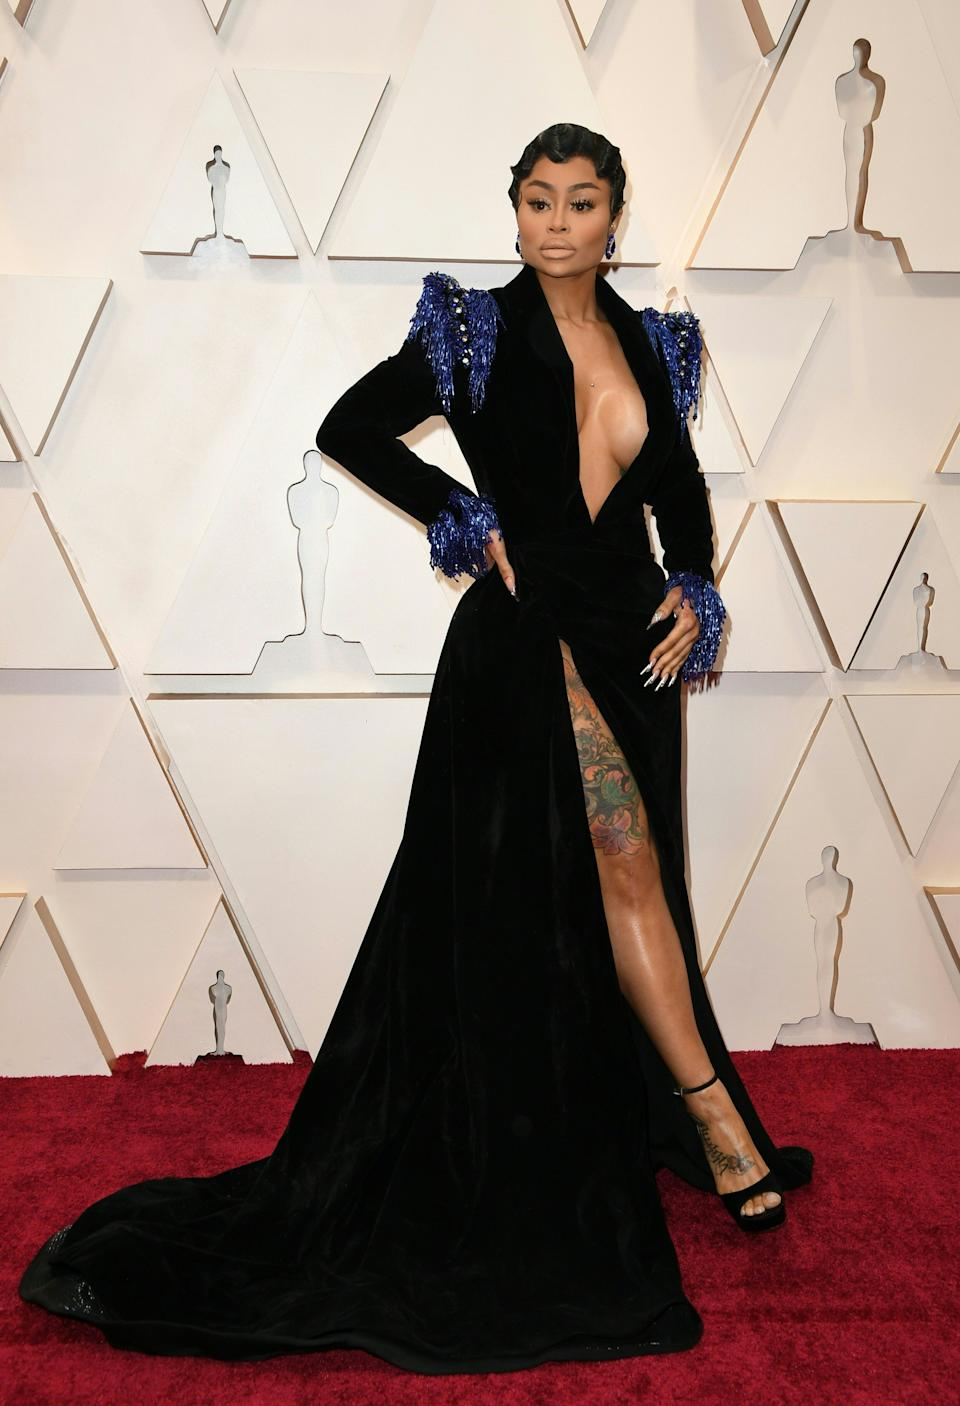 The model and designer wasn't afraid to show some skin in a plunging black gown with blue accents.